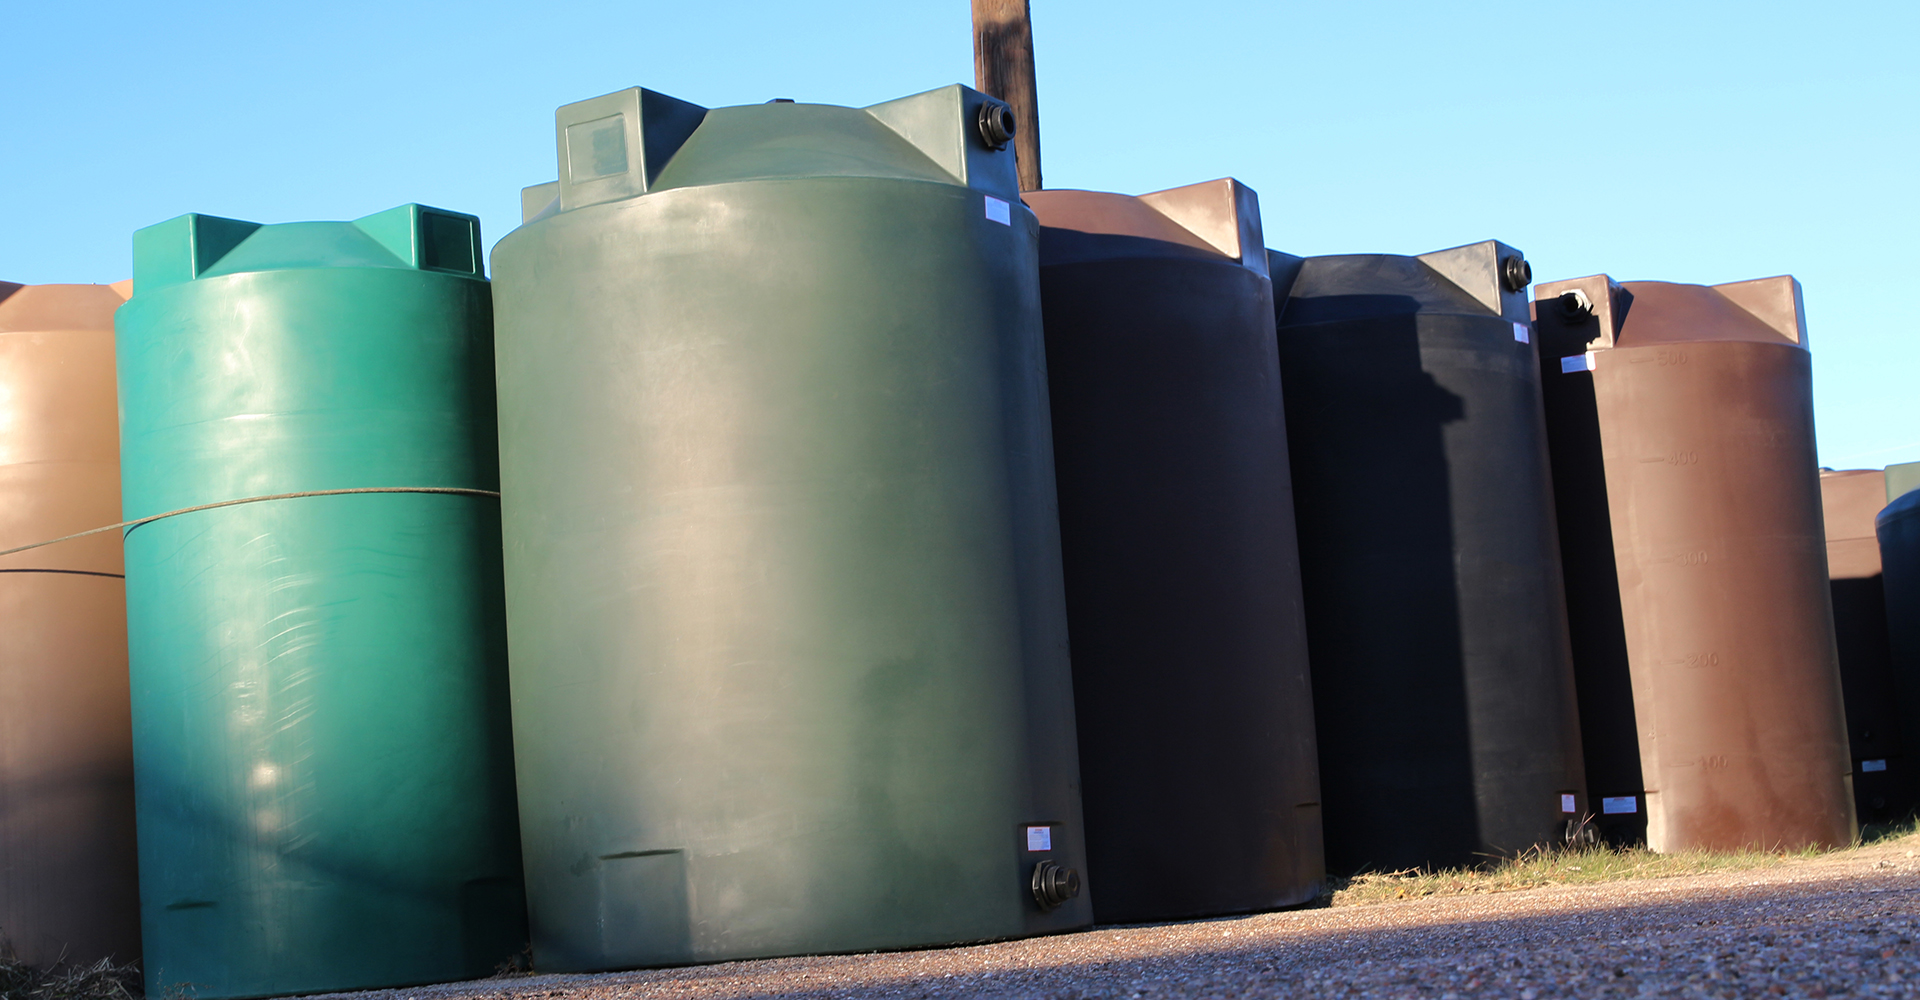 rain harvesting tanks, water storage tanks, and more!